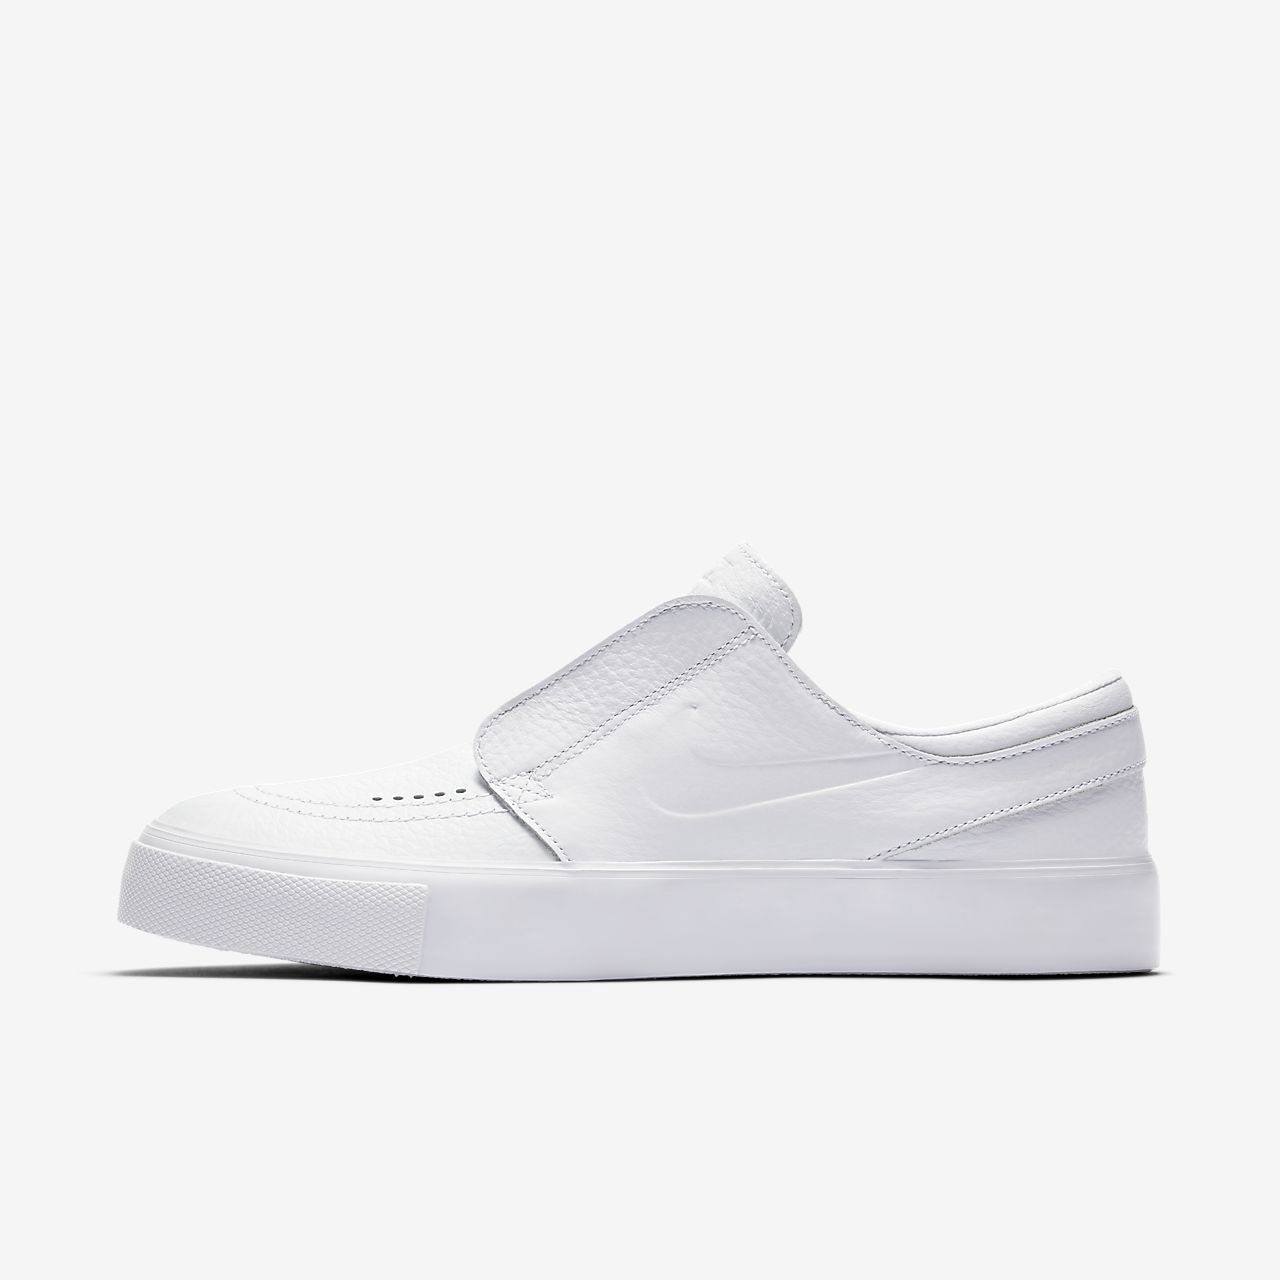 huge discount 0cd1f a5fad Nike Dunk Low, Chaussures de Basketball Homme, Blanc (WhiteWhiteWhite